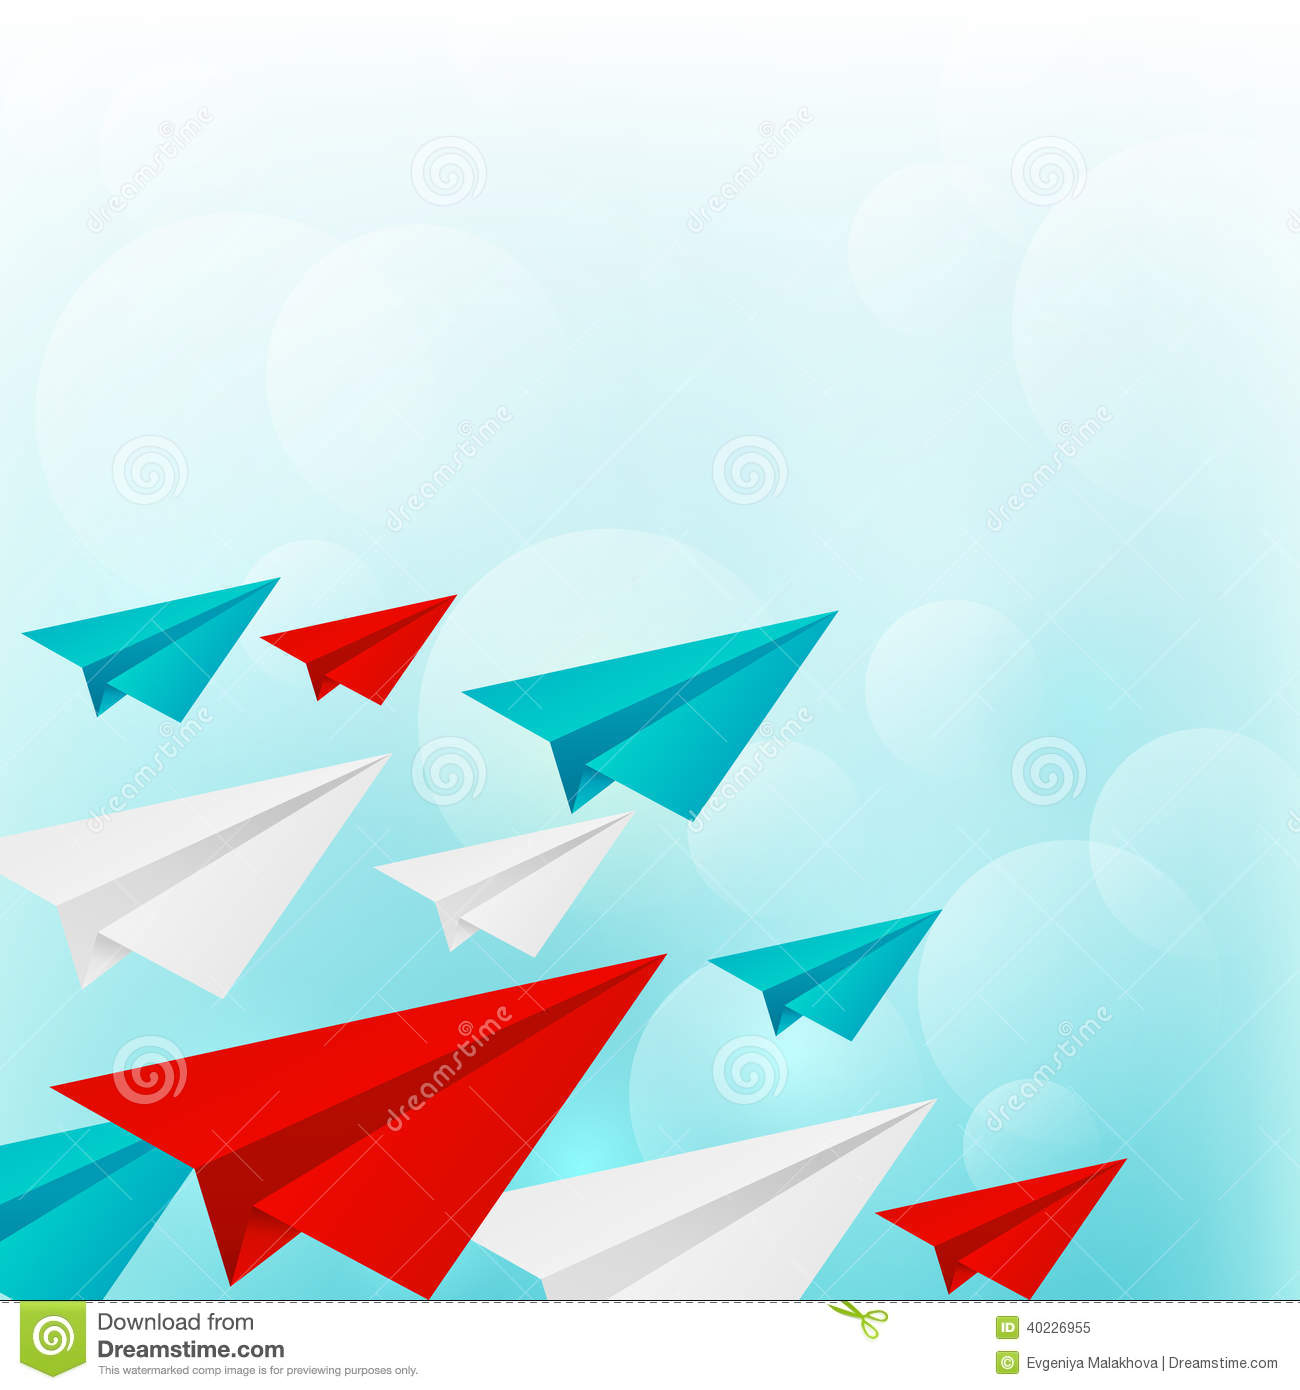 Paper Airplanes On Blue Sky Background Stock Vector - Illustration ...